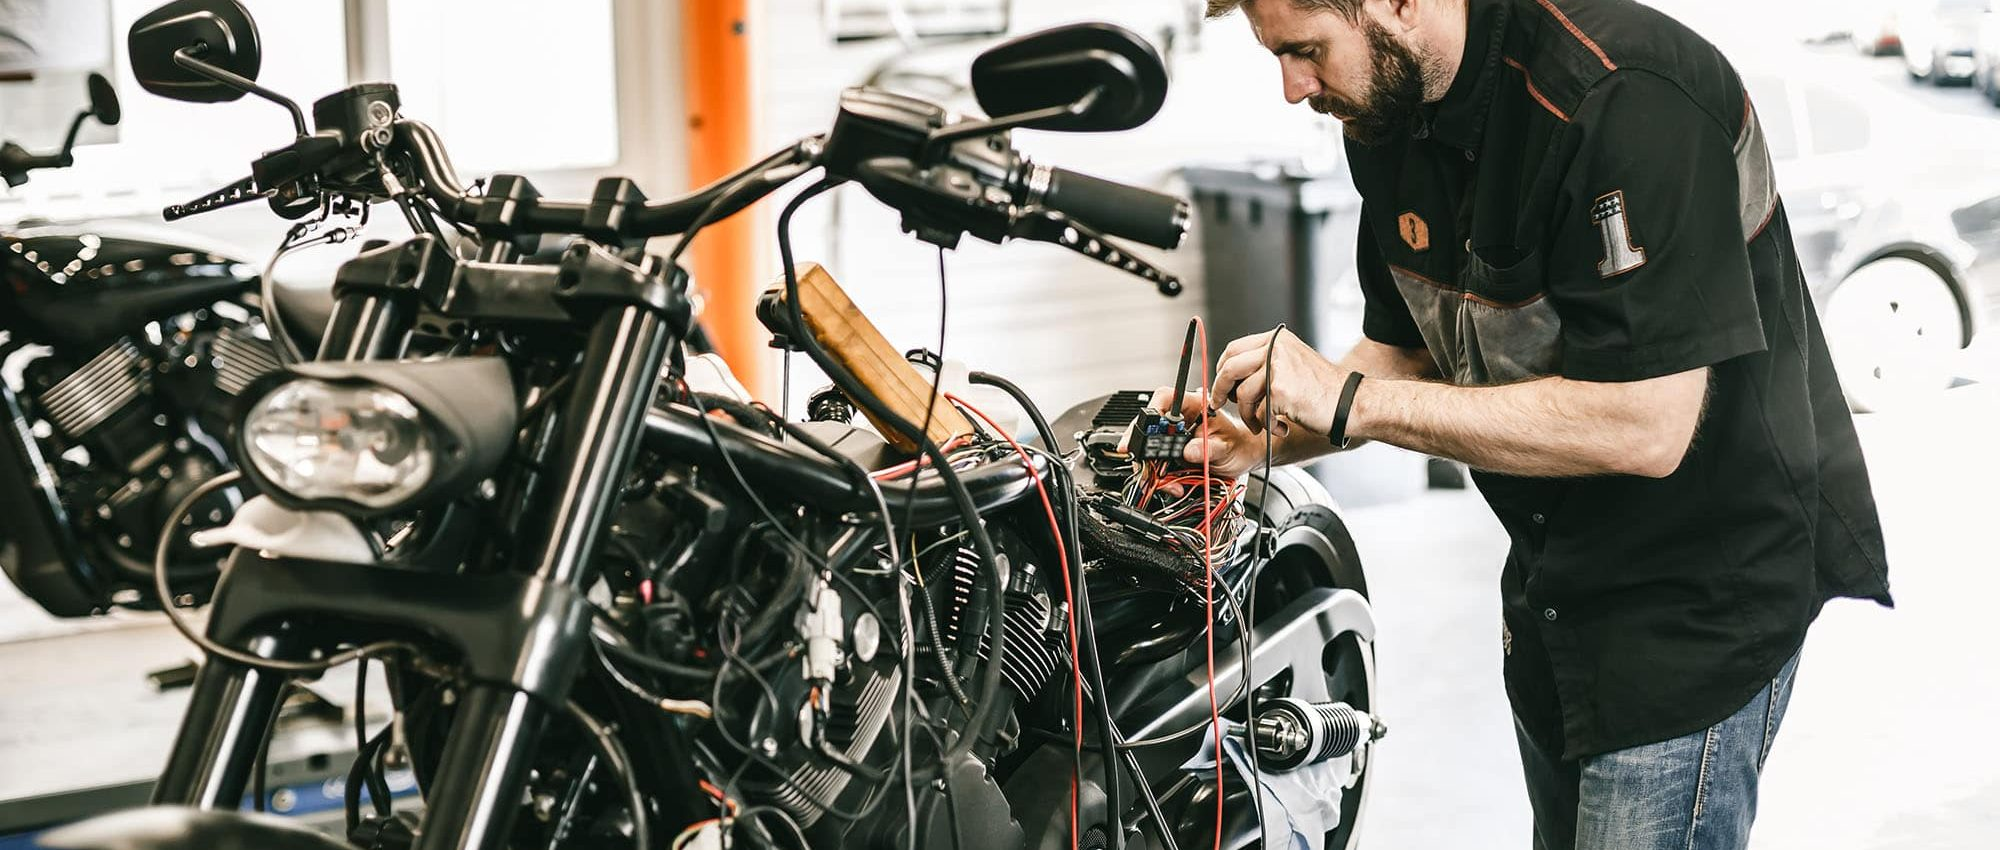 picture of a man fixing a motorcycle in a garage